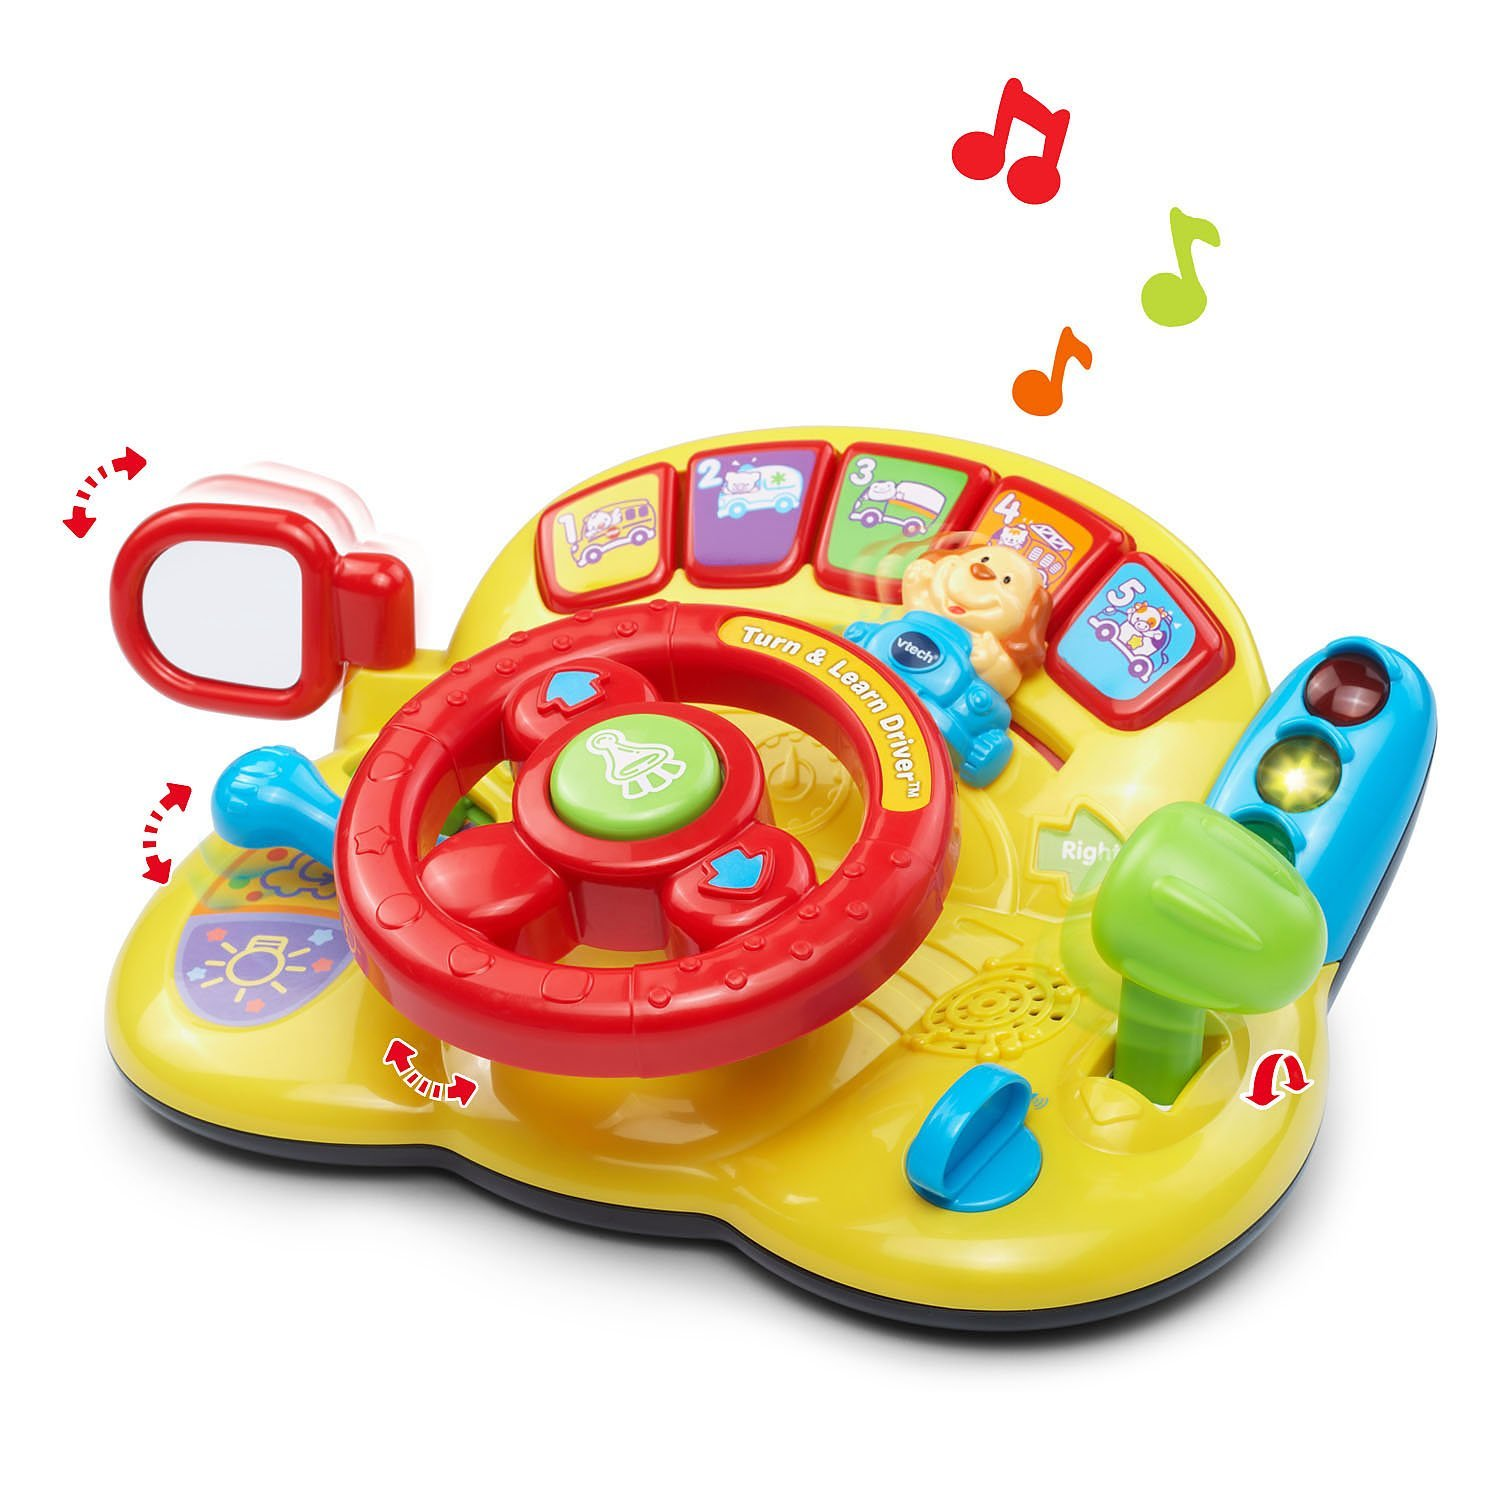 VTech Turn and Learn Driver, Includes 3 play modes, 60+ Songs, melodies & phrases New! by VTech